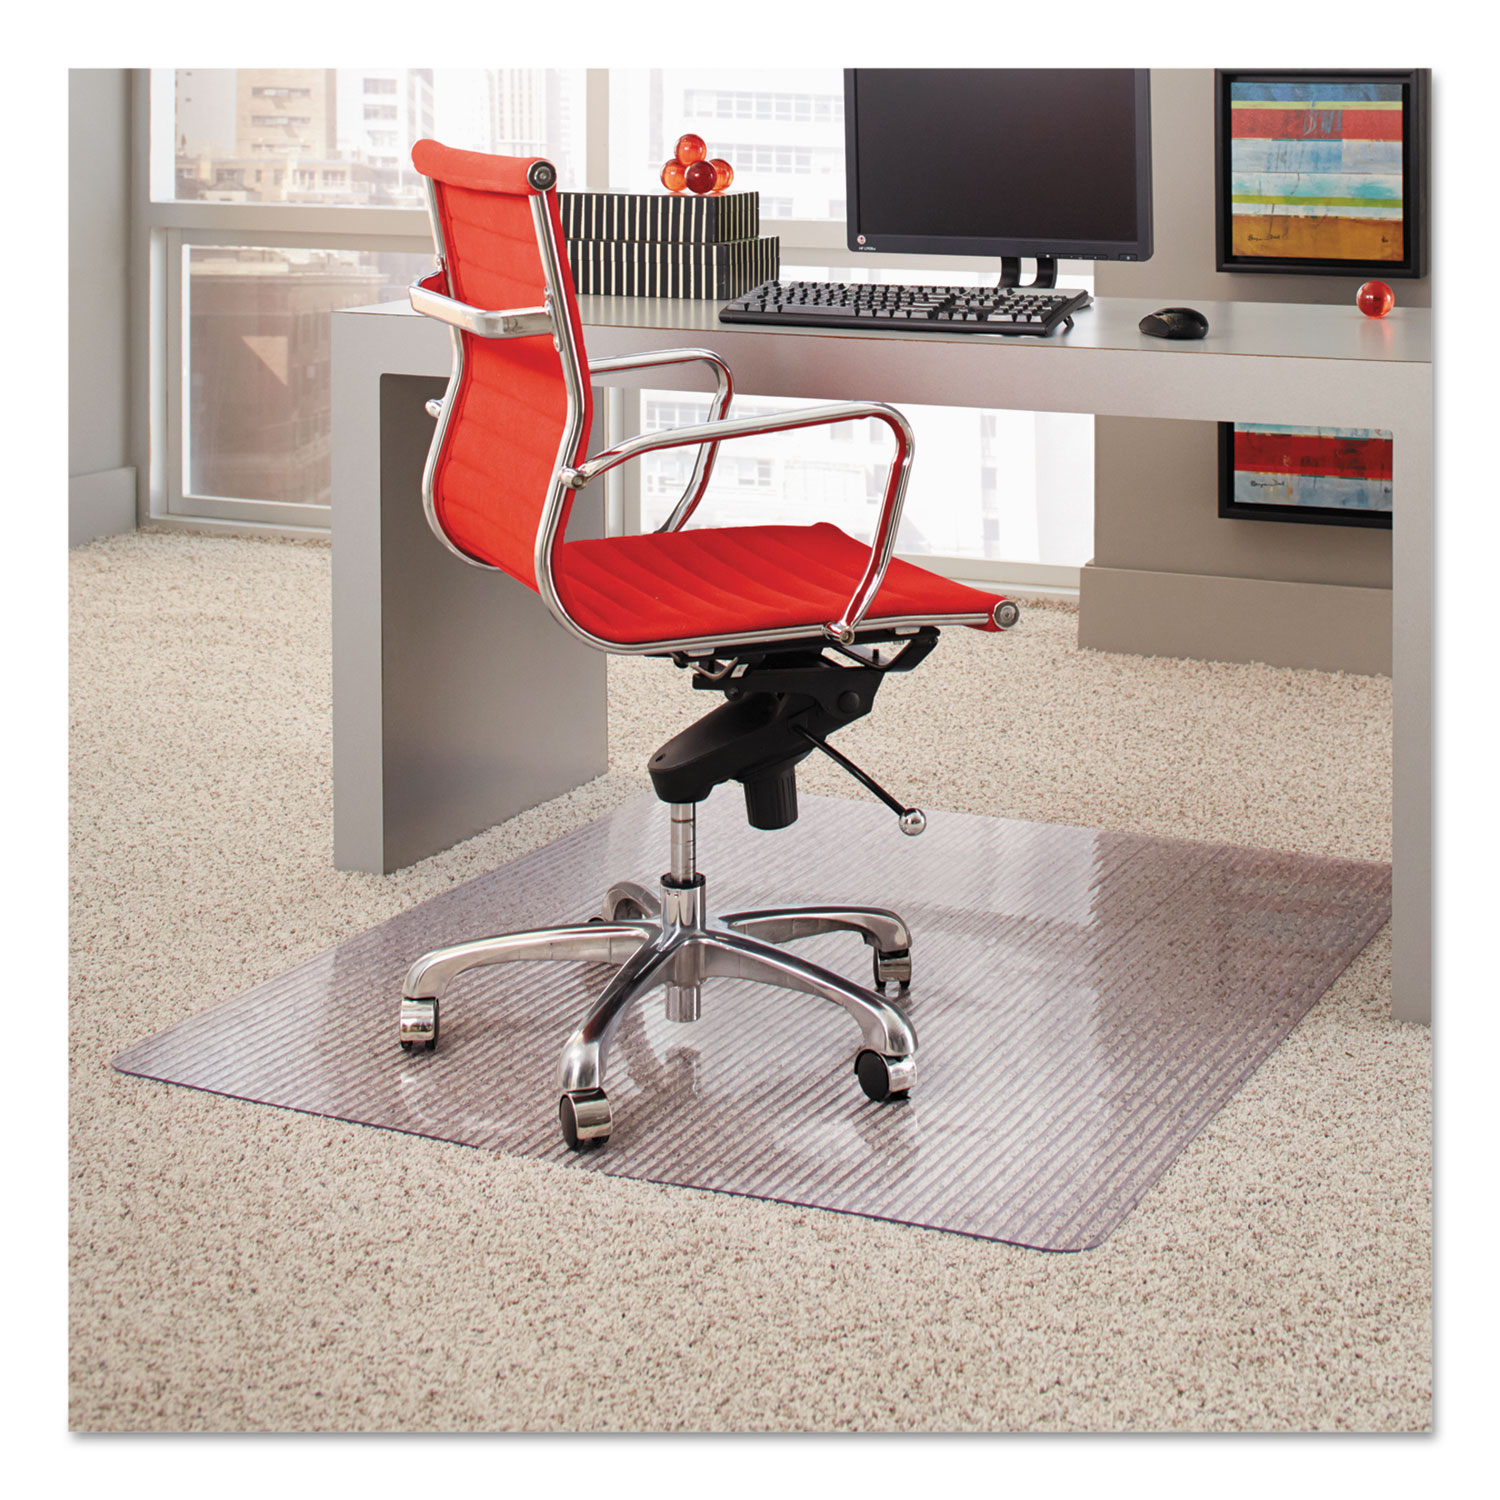 office chair mat 45 x 60 used spandex covers dimensions for carpet by es robbins esr162008